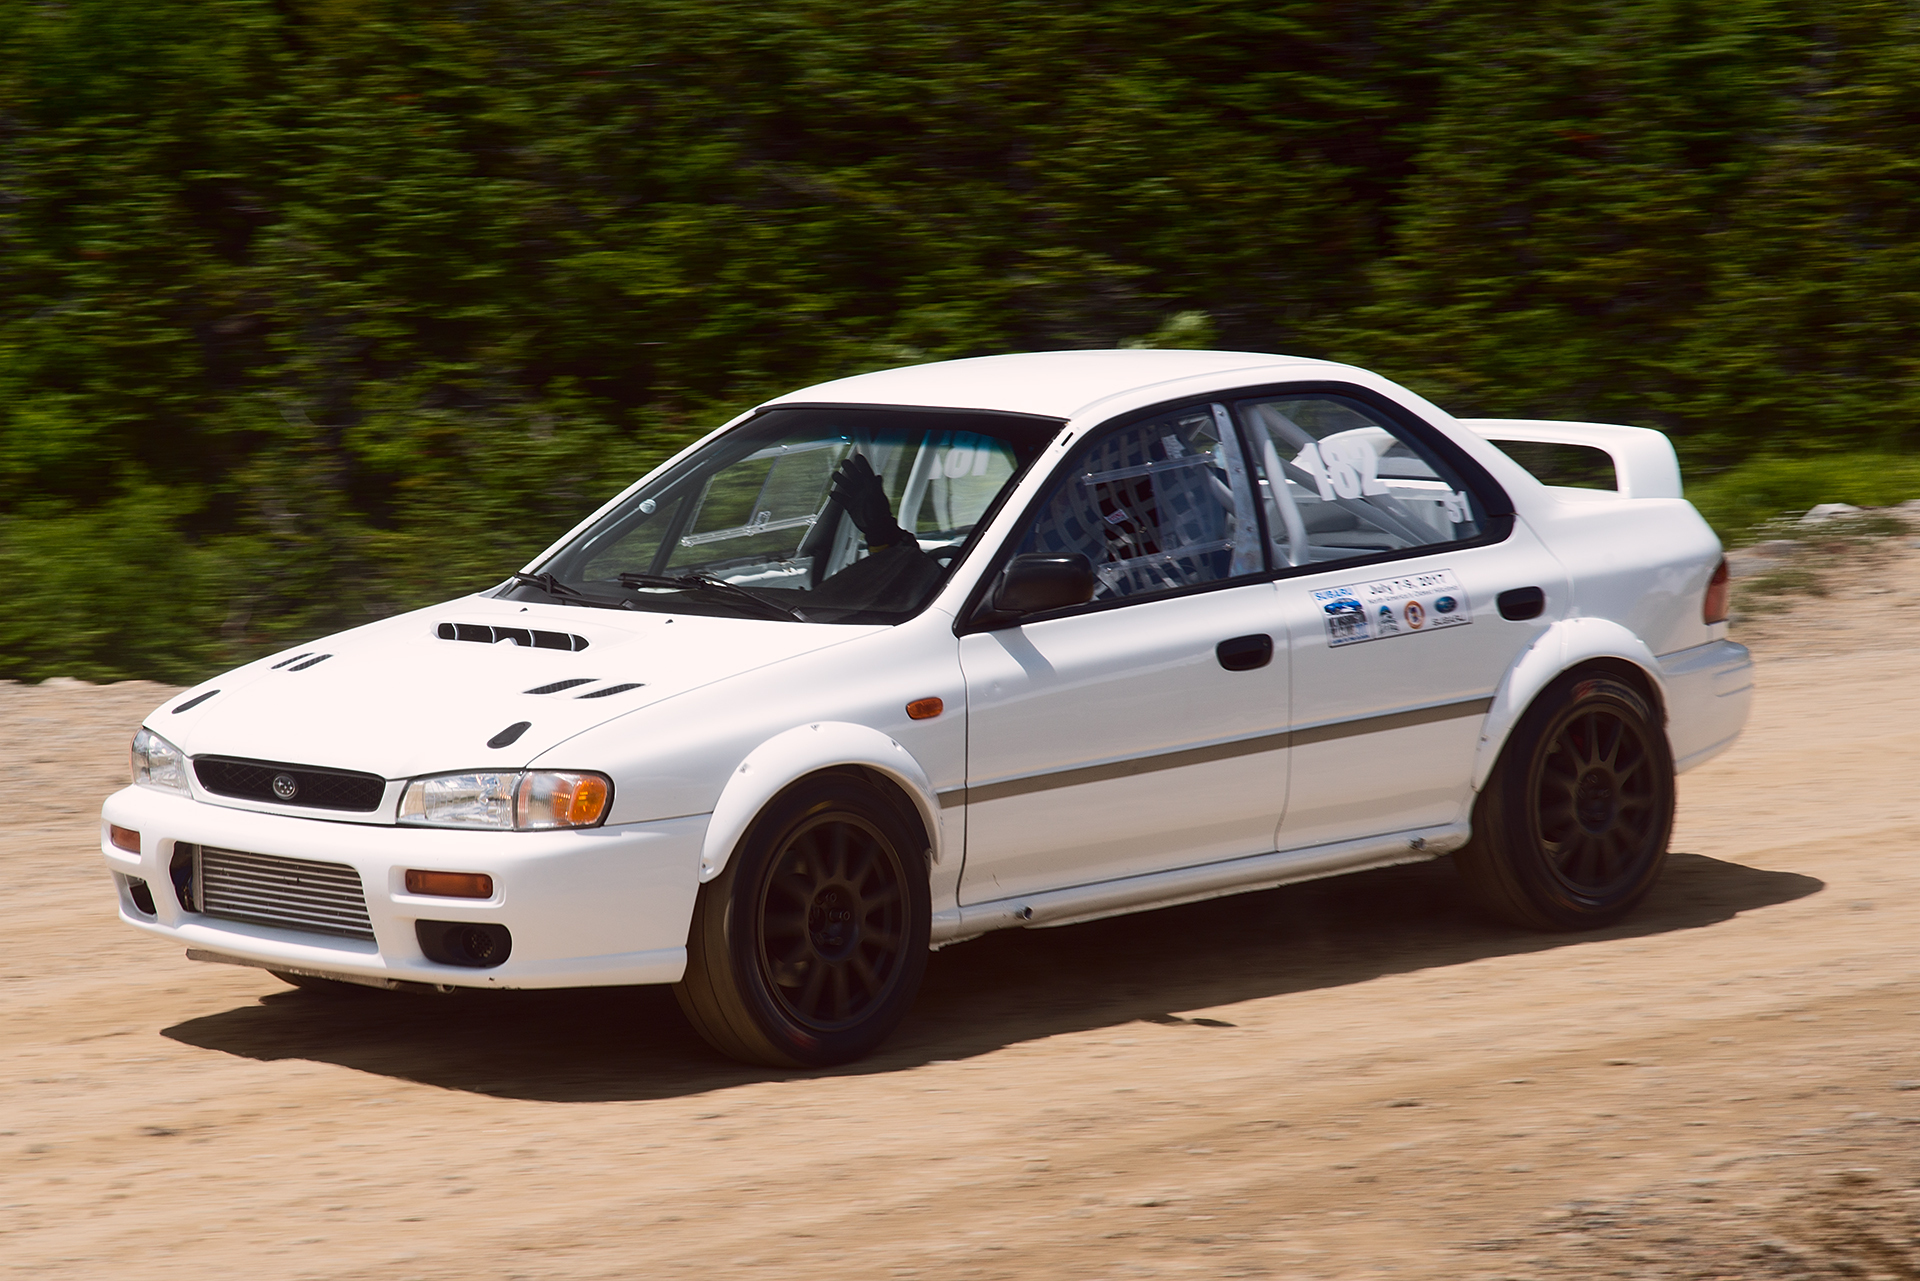 Car 182 at Climb to the Clouds 2017